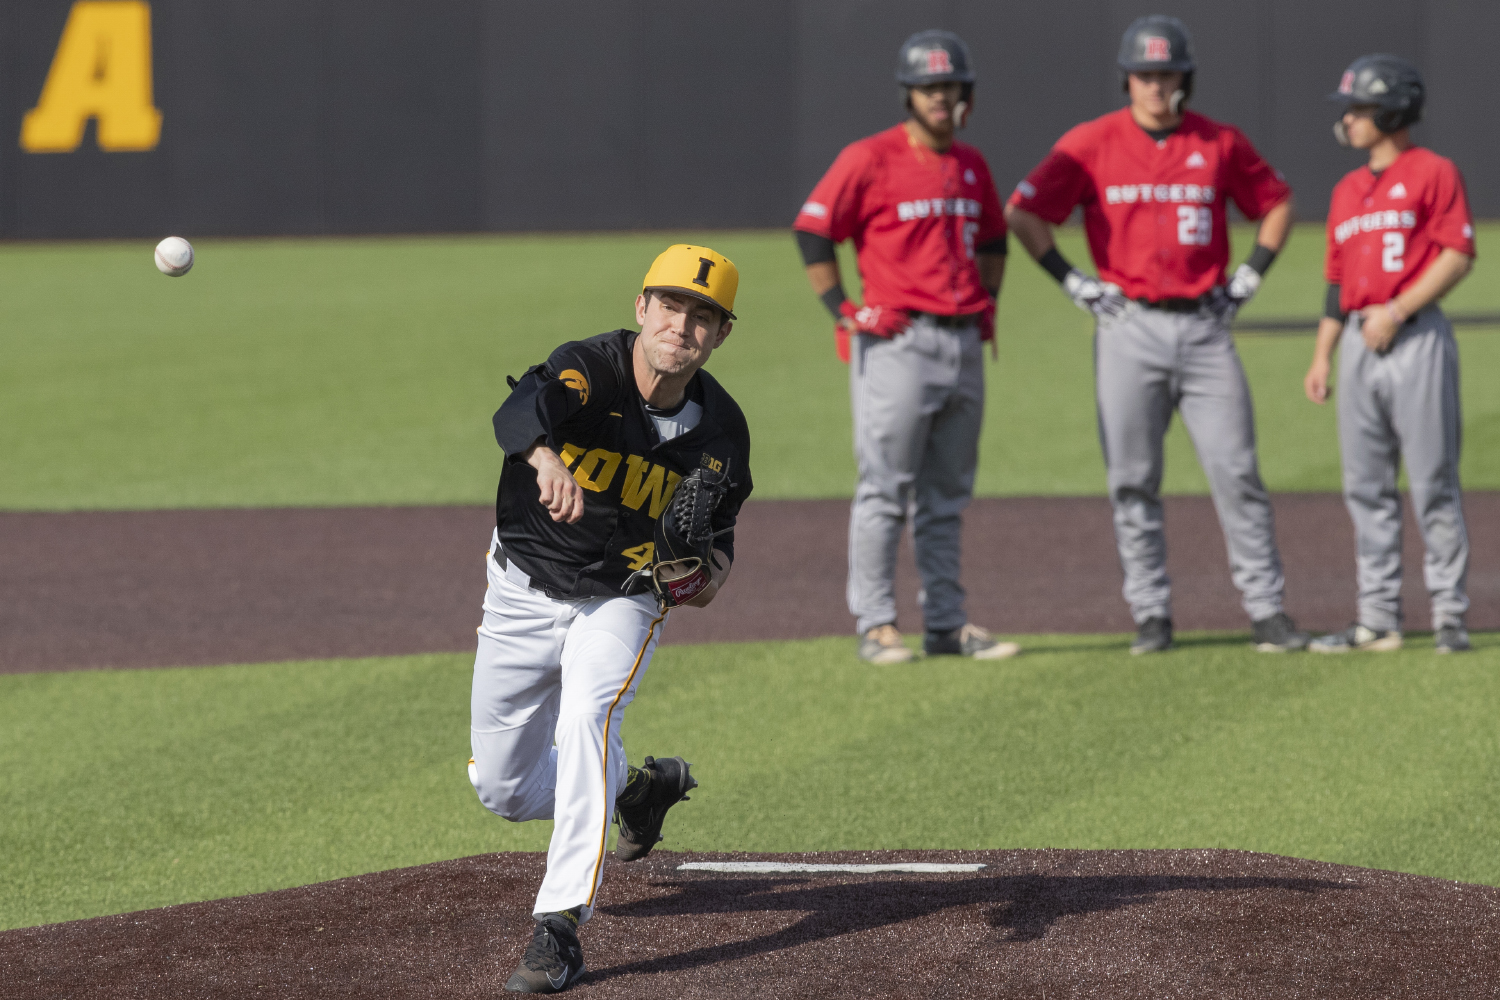 Iowa pitcher Grant Leonard warms up to pitch during the seventh inning of the afternoon Iowa vs Rutgers game at Duane Banks Field on Saturday, April 7, 2019. The Hawkeyes defeated the Scarlet Knights 9-5.